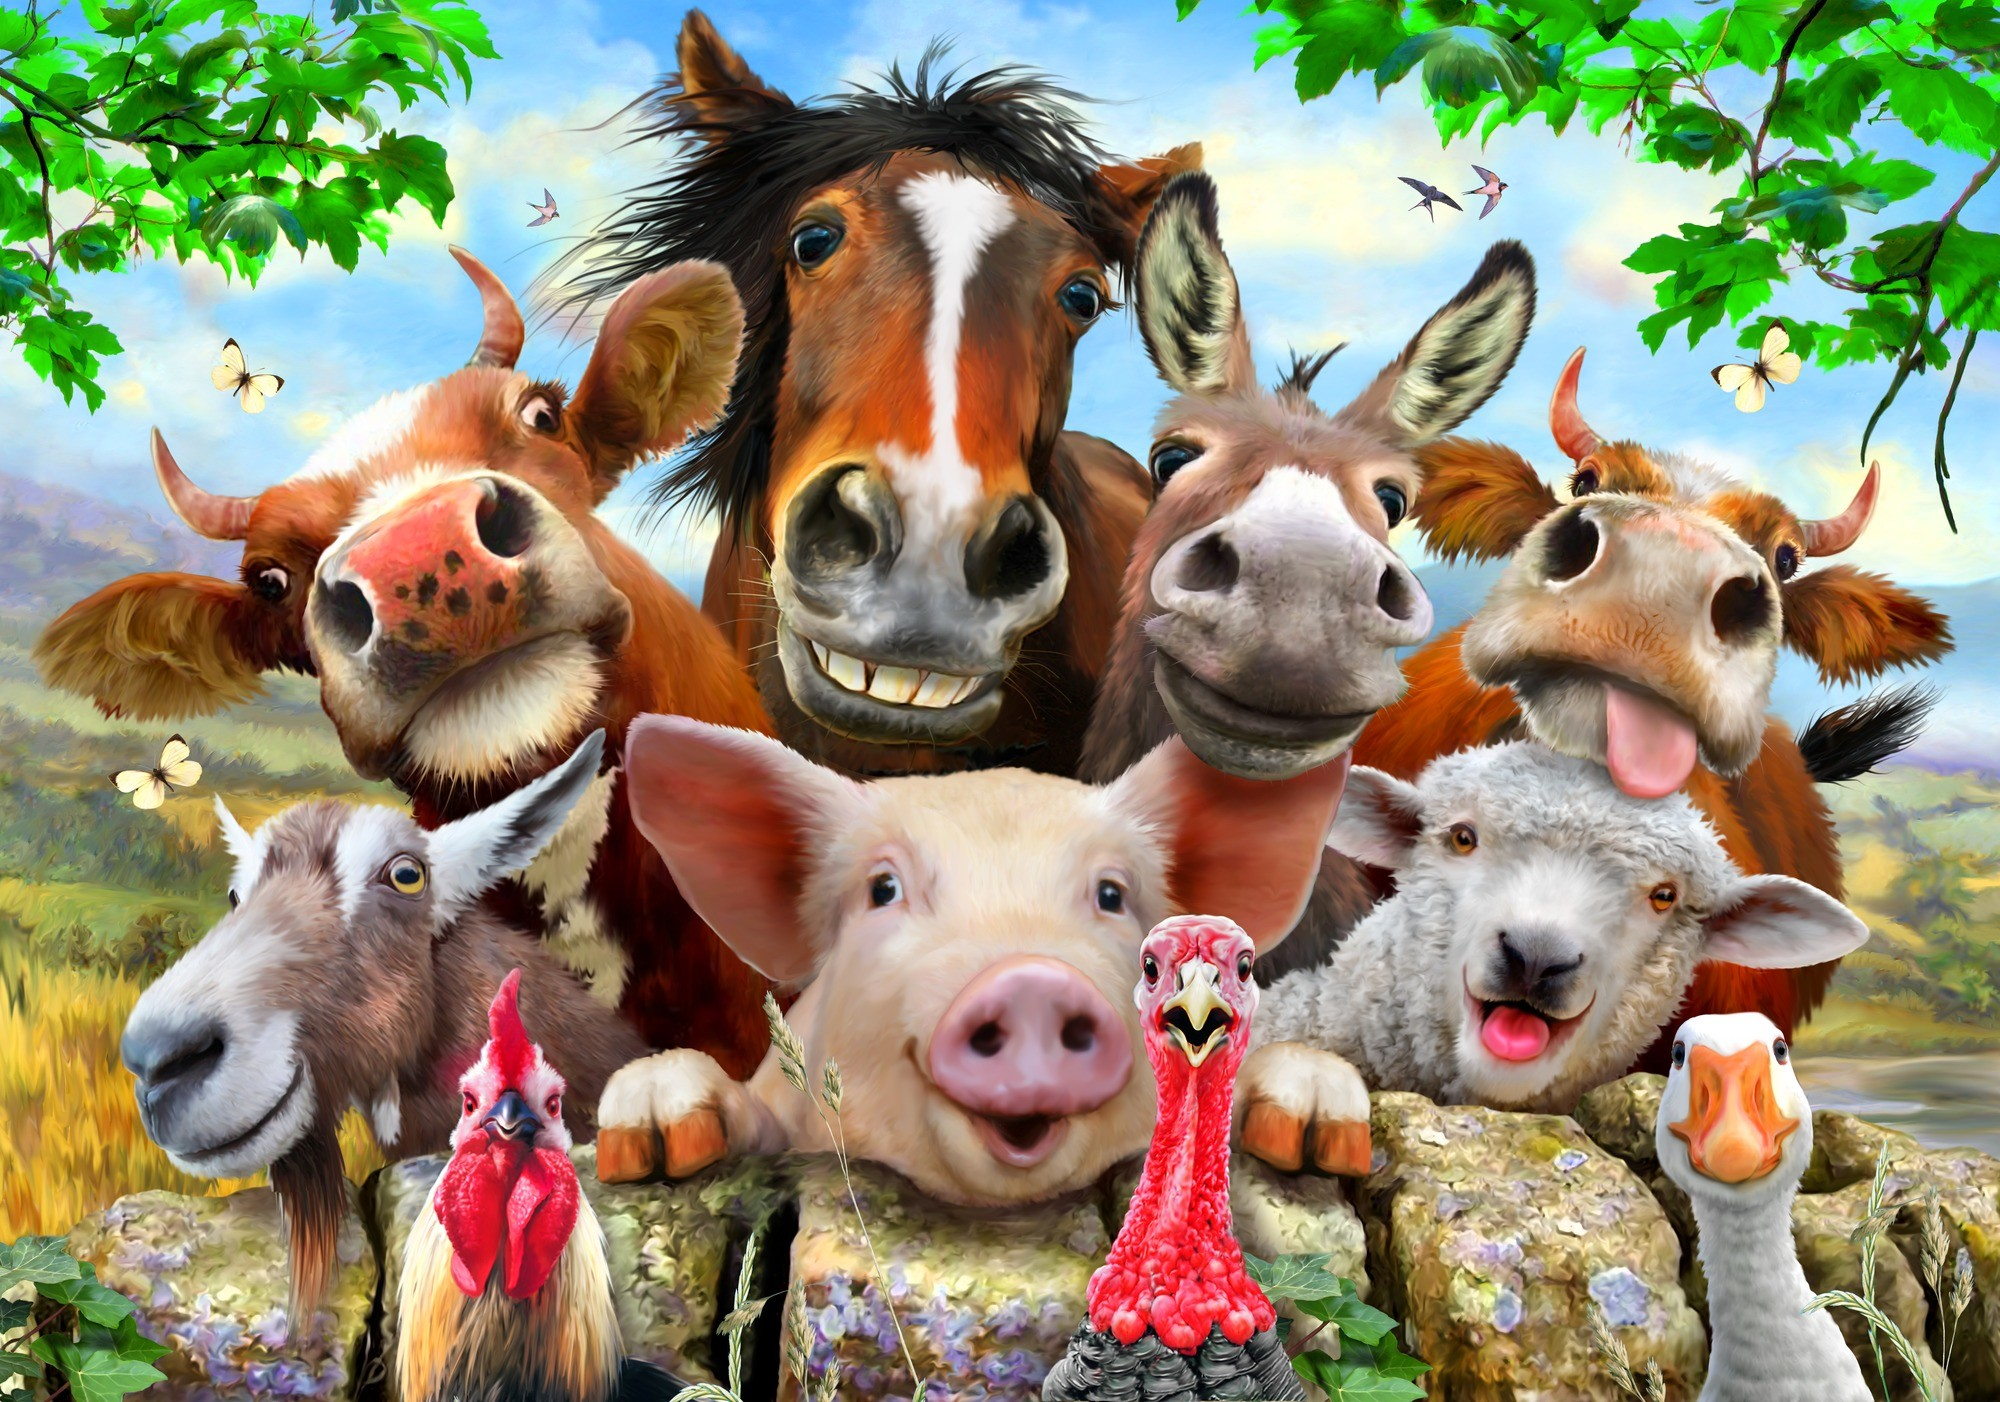 Farm animals wallpaper 58 images - Animaux ferme photos ...